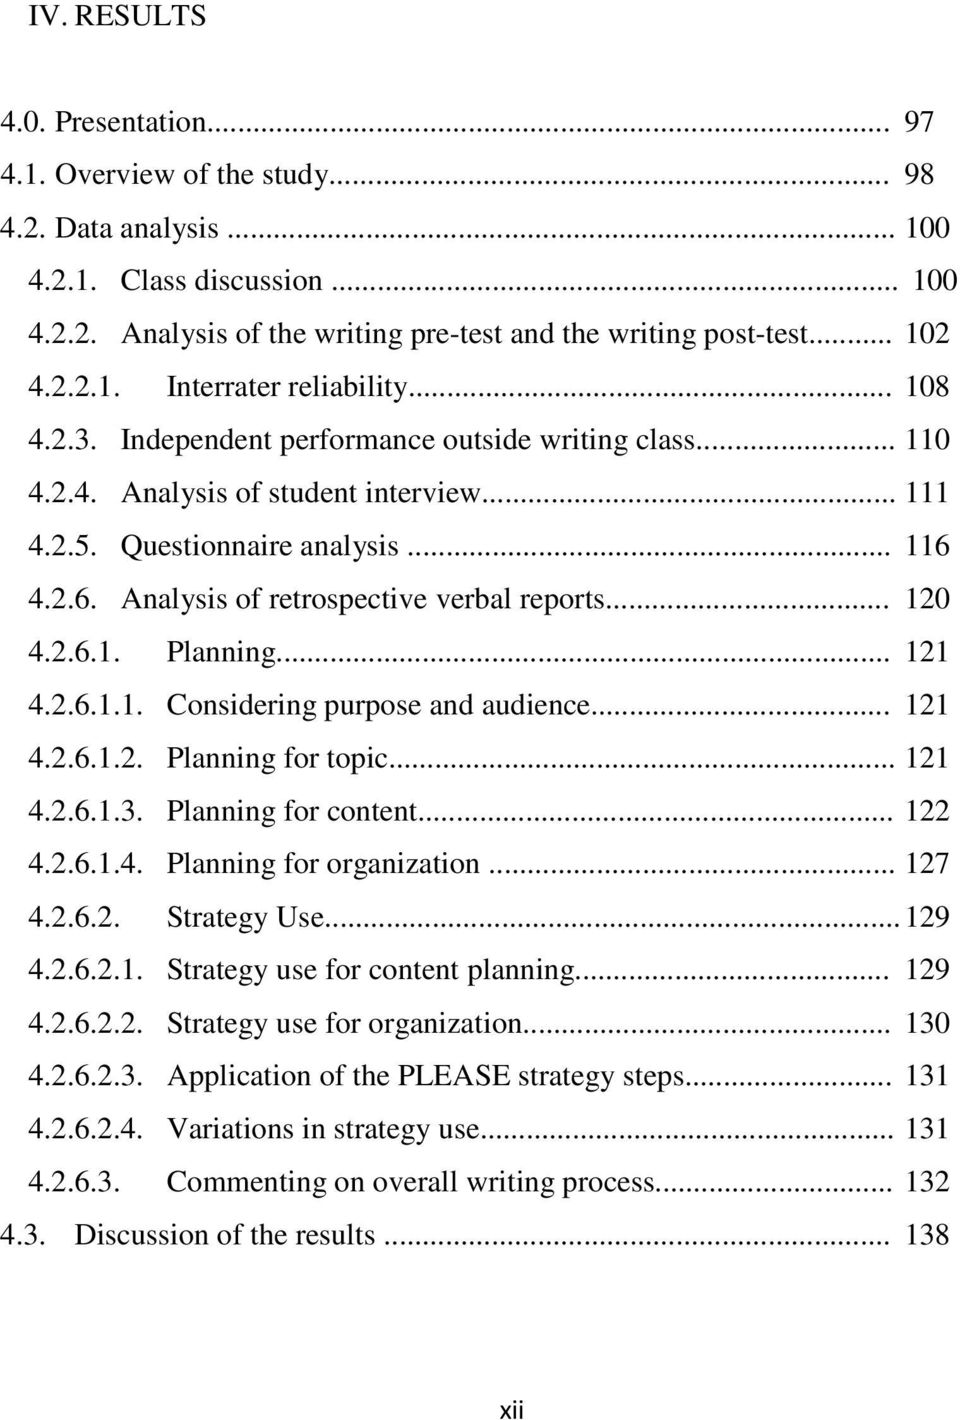 4.2.6. Analysis of retrospective verbal reports... 120 4.2.6.1. Planning... 121 4.2.6.1.1. Considering purpose and audience... 121 4.2.6.1.2. Planning for topic... 121 4.2.6.1.3. Planning for content.